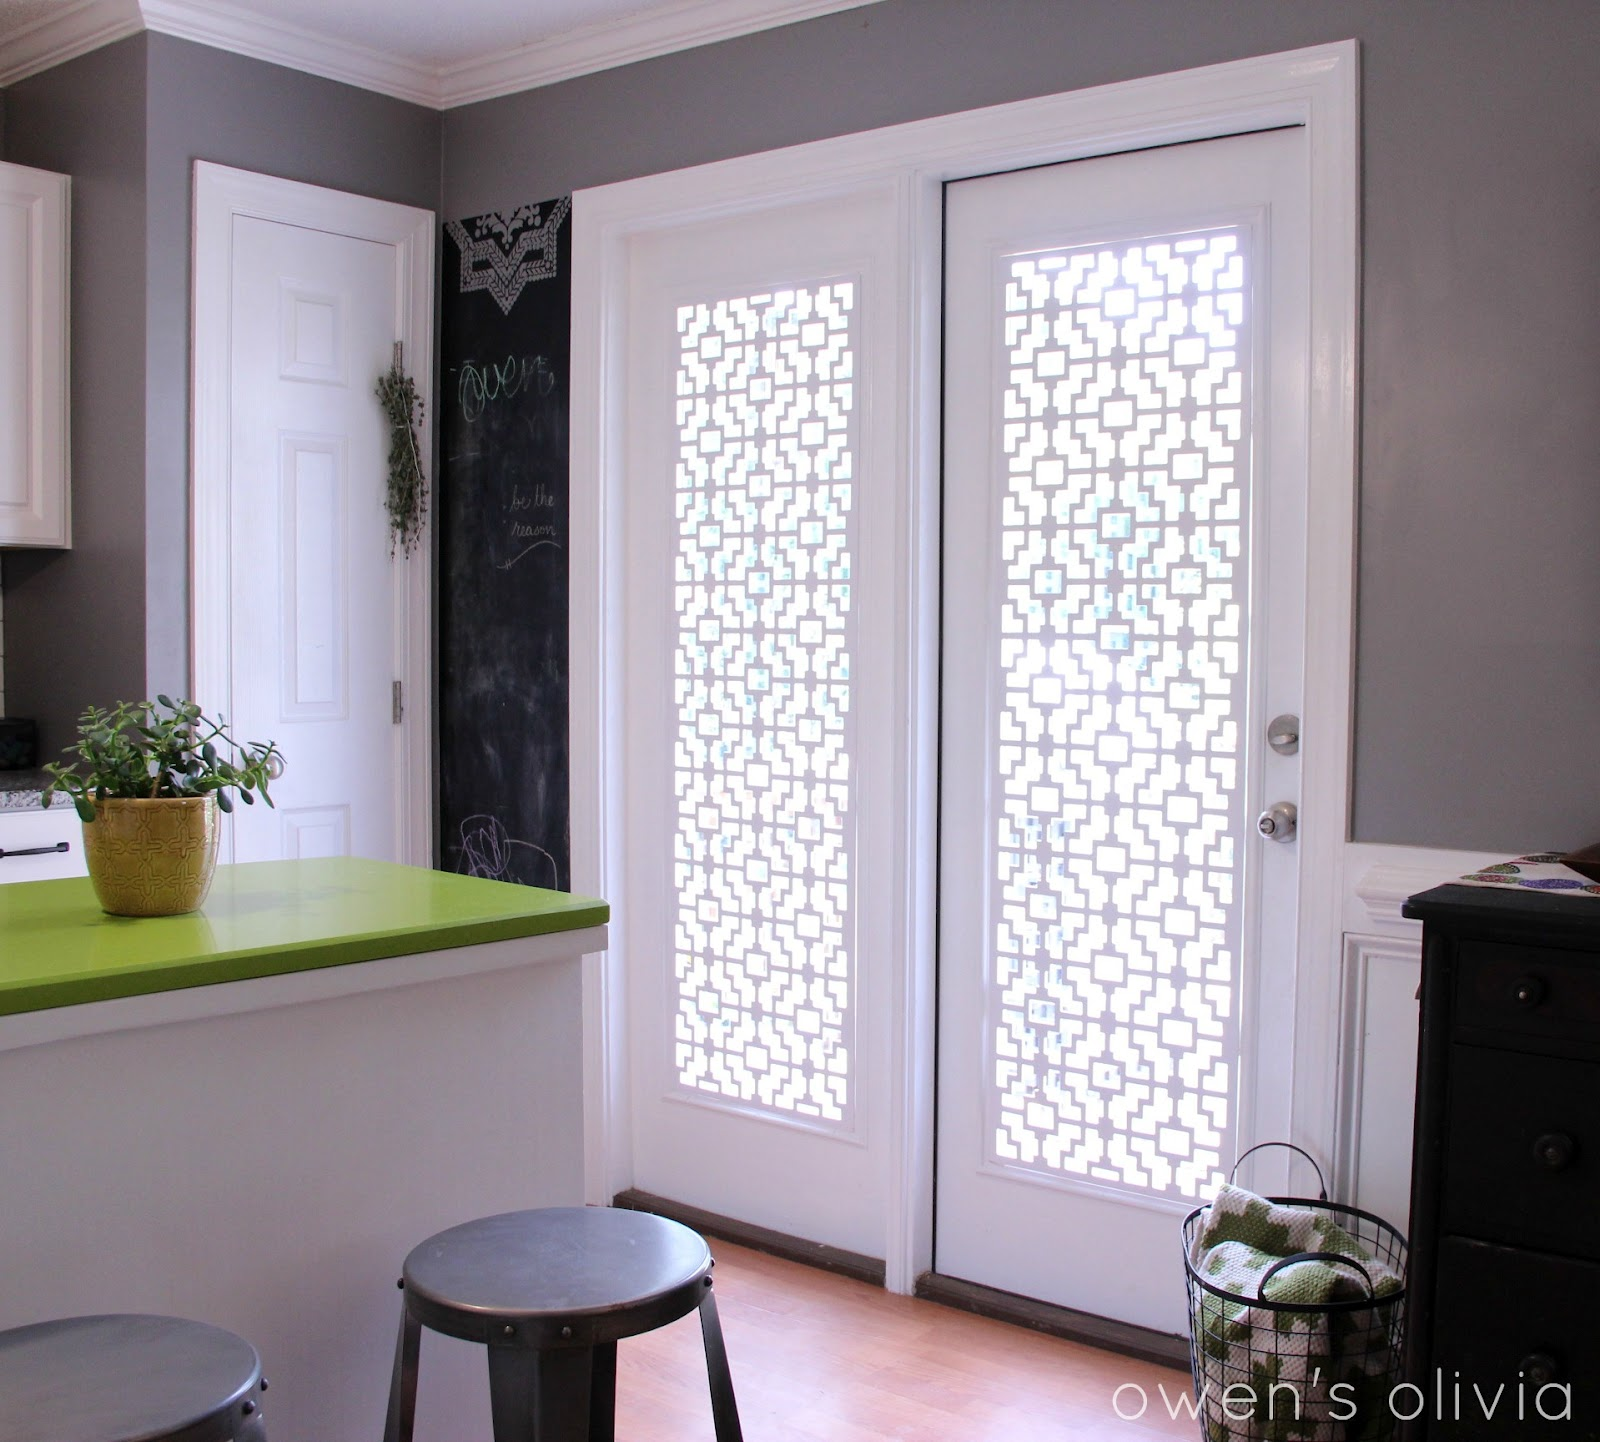 Amazing Owenu0027s Olivia: Custom Window Treatments Using PVC. I u003c3 this for my kitchen. window treatments for french doors in kitchen